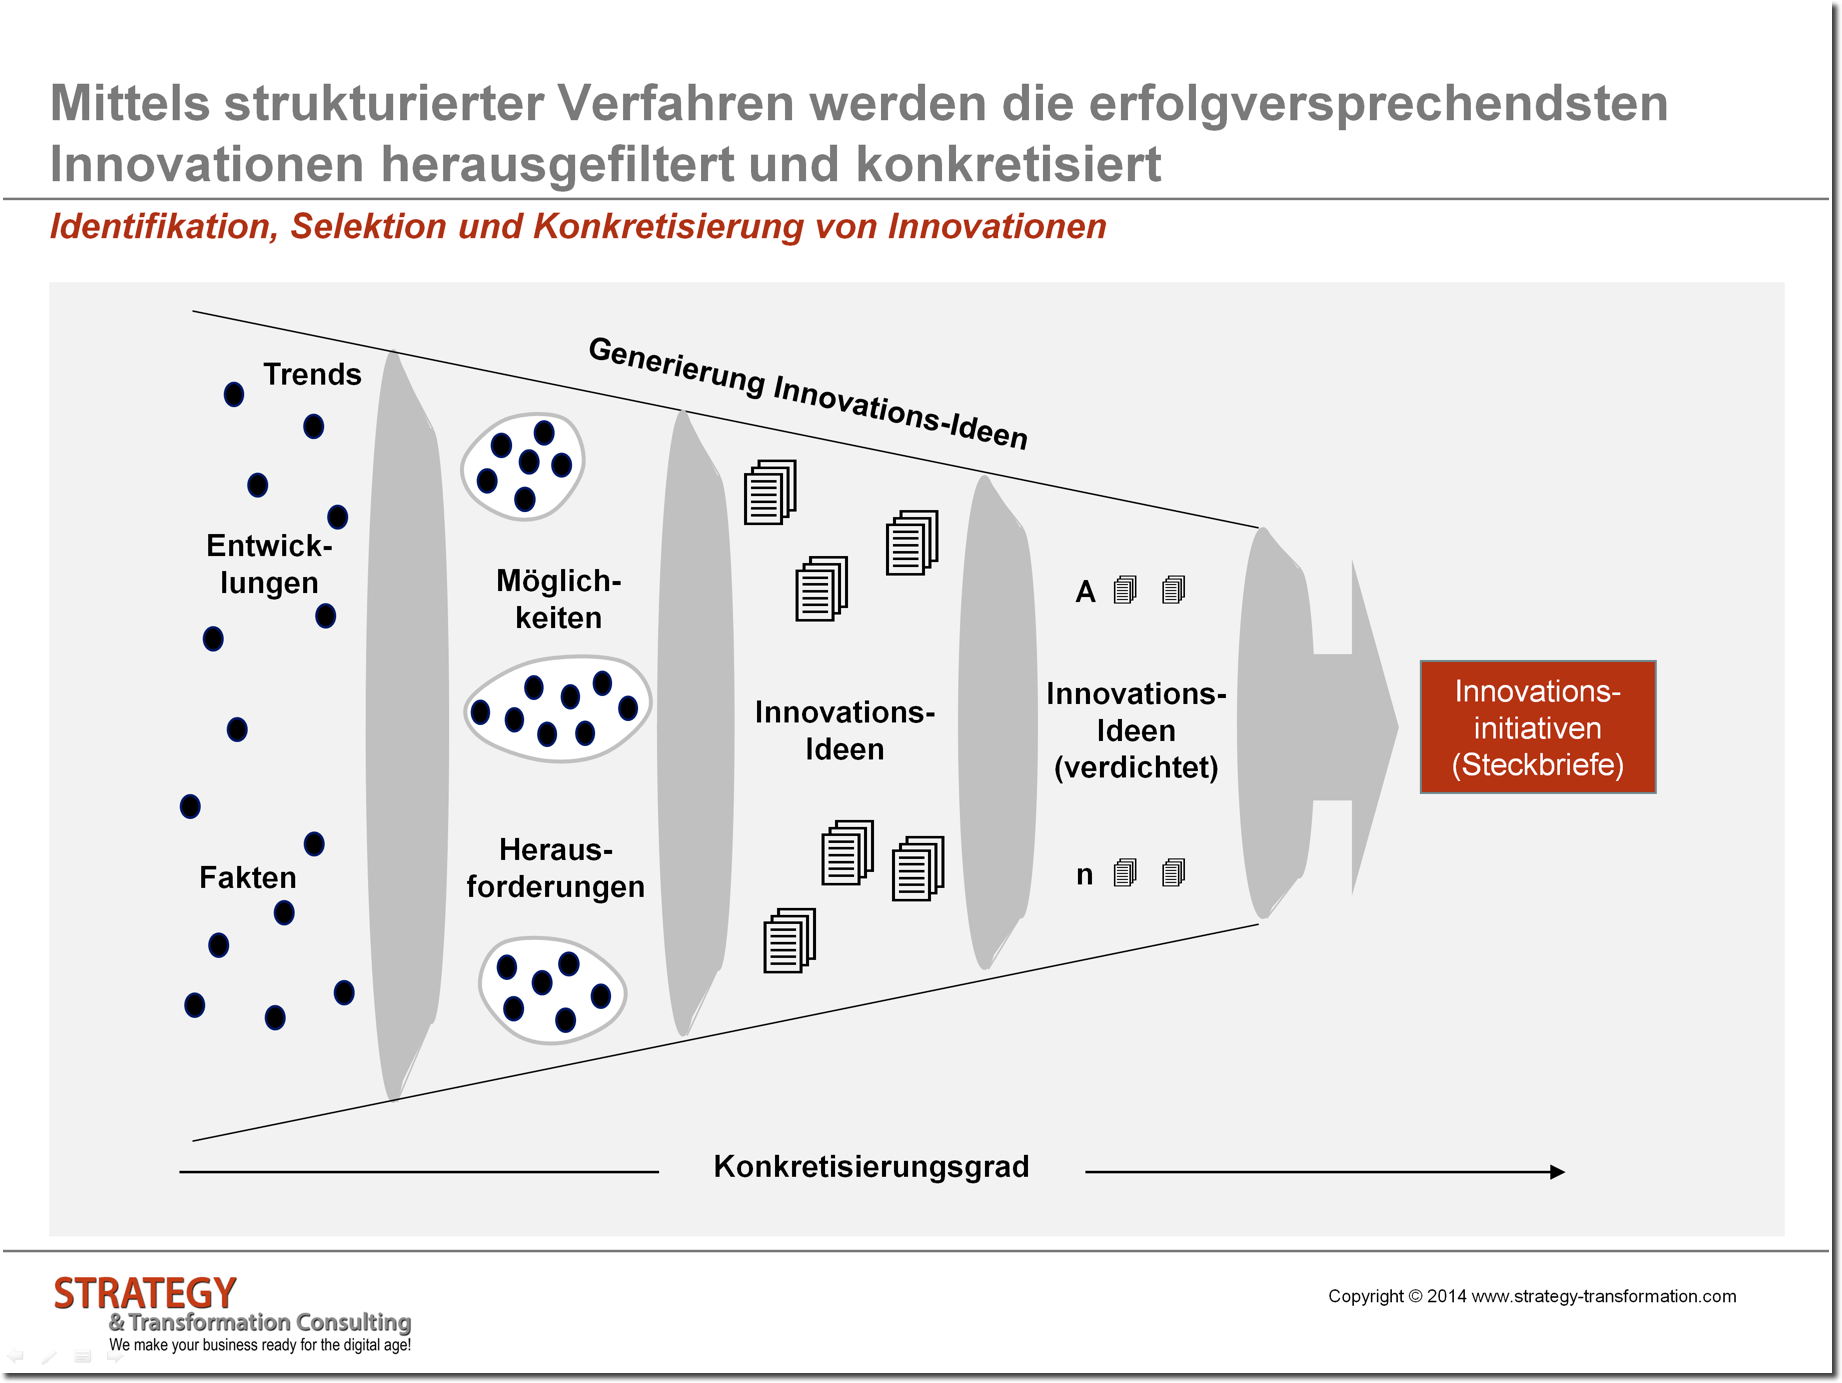 04_Identifikation von Innovationen